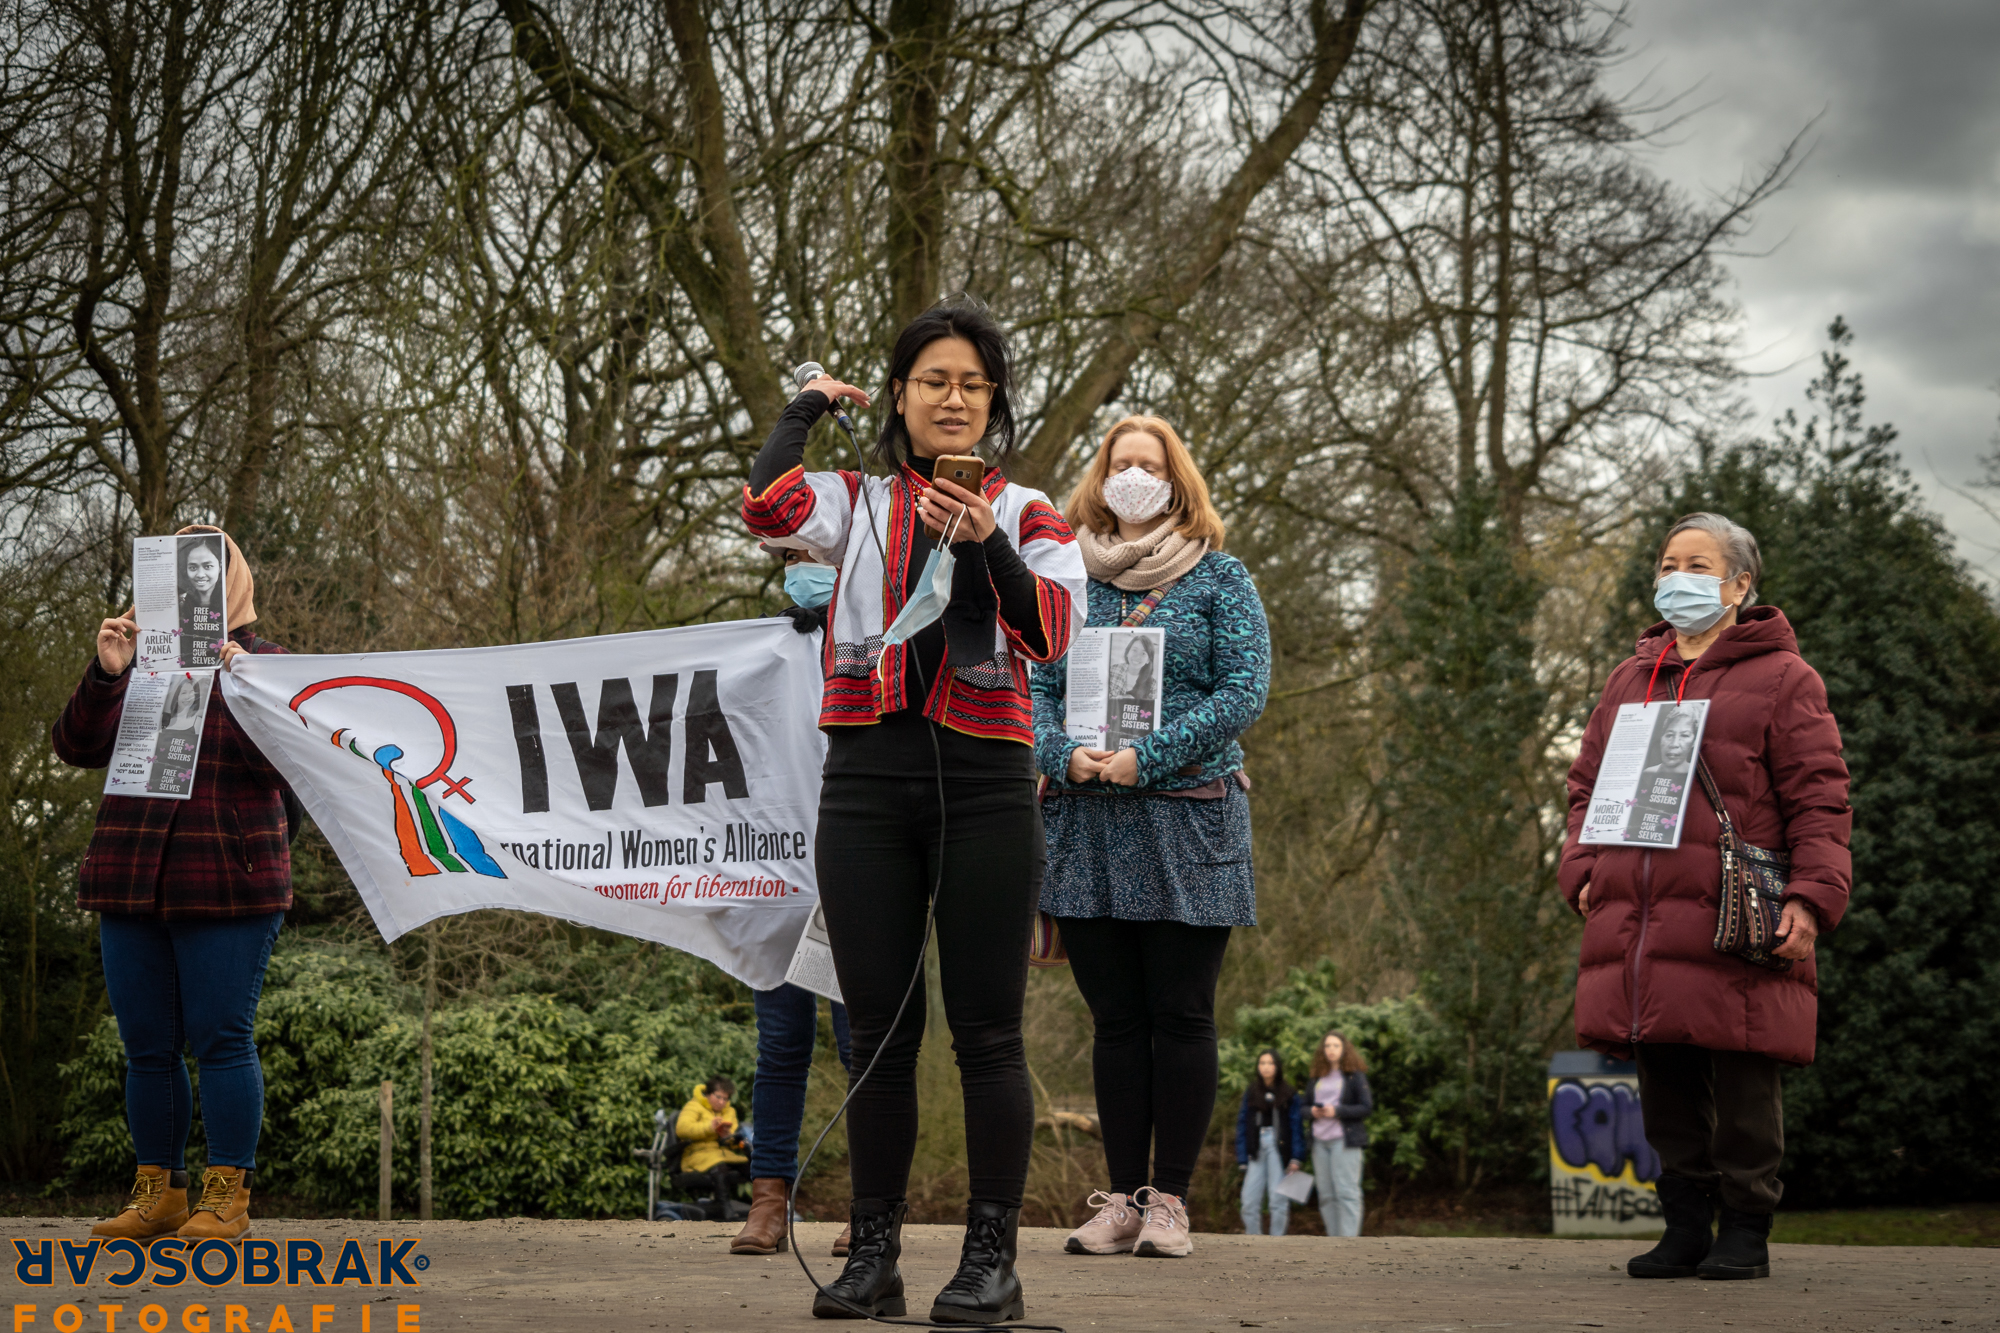 Run up International Women's day Utrecht Oscar Brak Fotografie